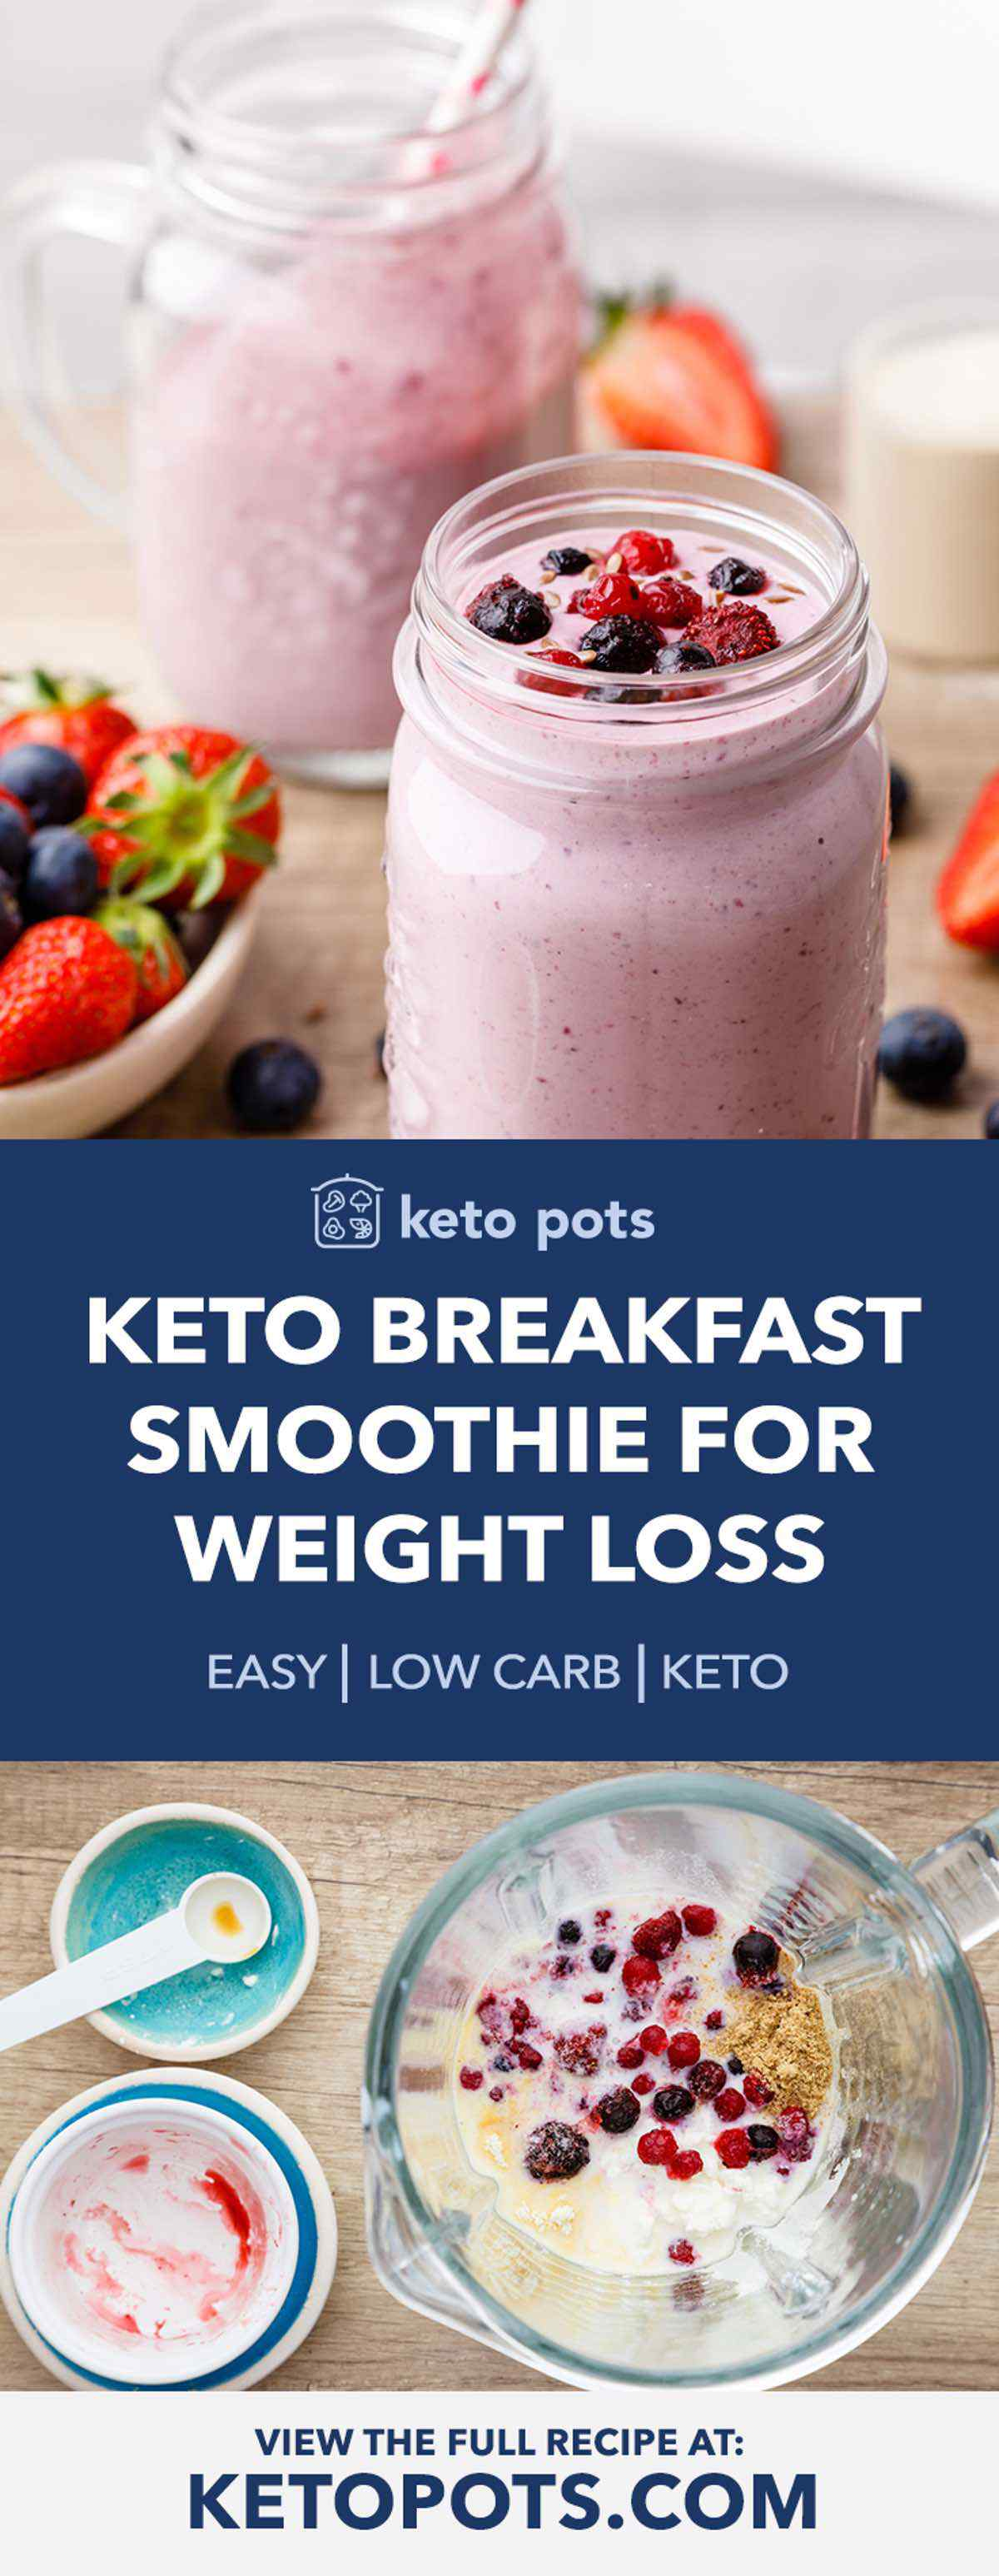 Protein Packed Keto Breakfast Smoothie For Weight Loss Keto Pots